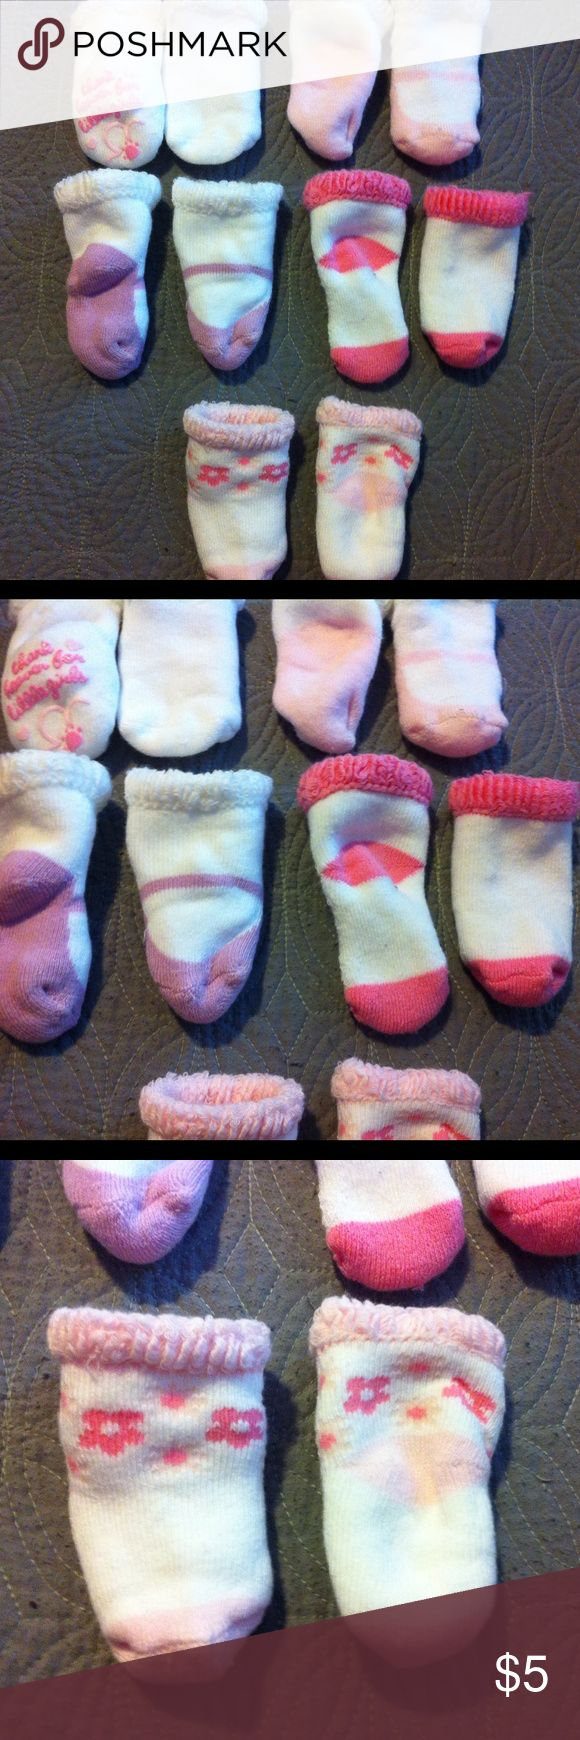 Newborn Girl Socks Baby girl socks. Super adorable and soft. Never have been used or worn. 5 pairs Accessories Socks & Tights